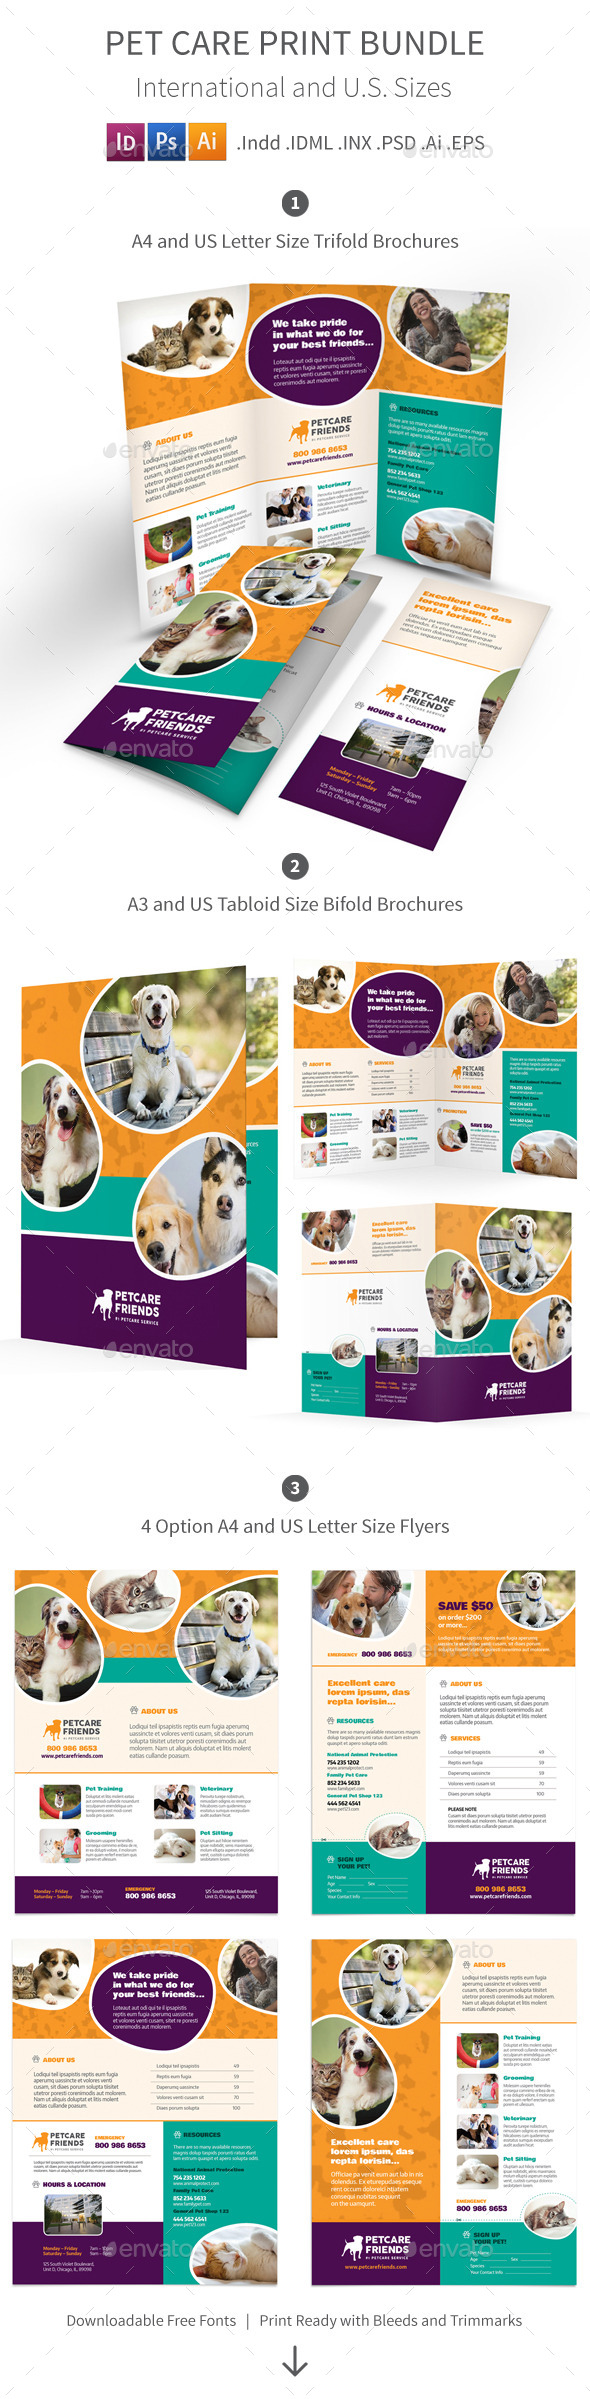 Pet Care Print Bundle - Informational Brochures